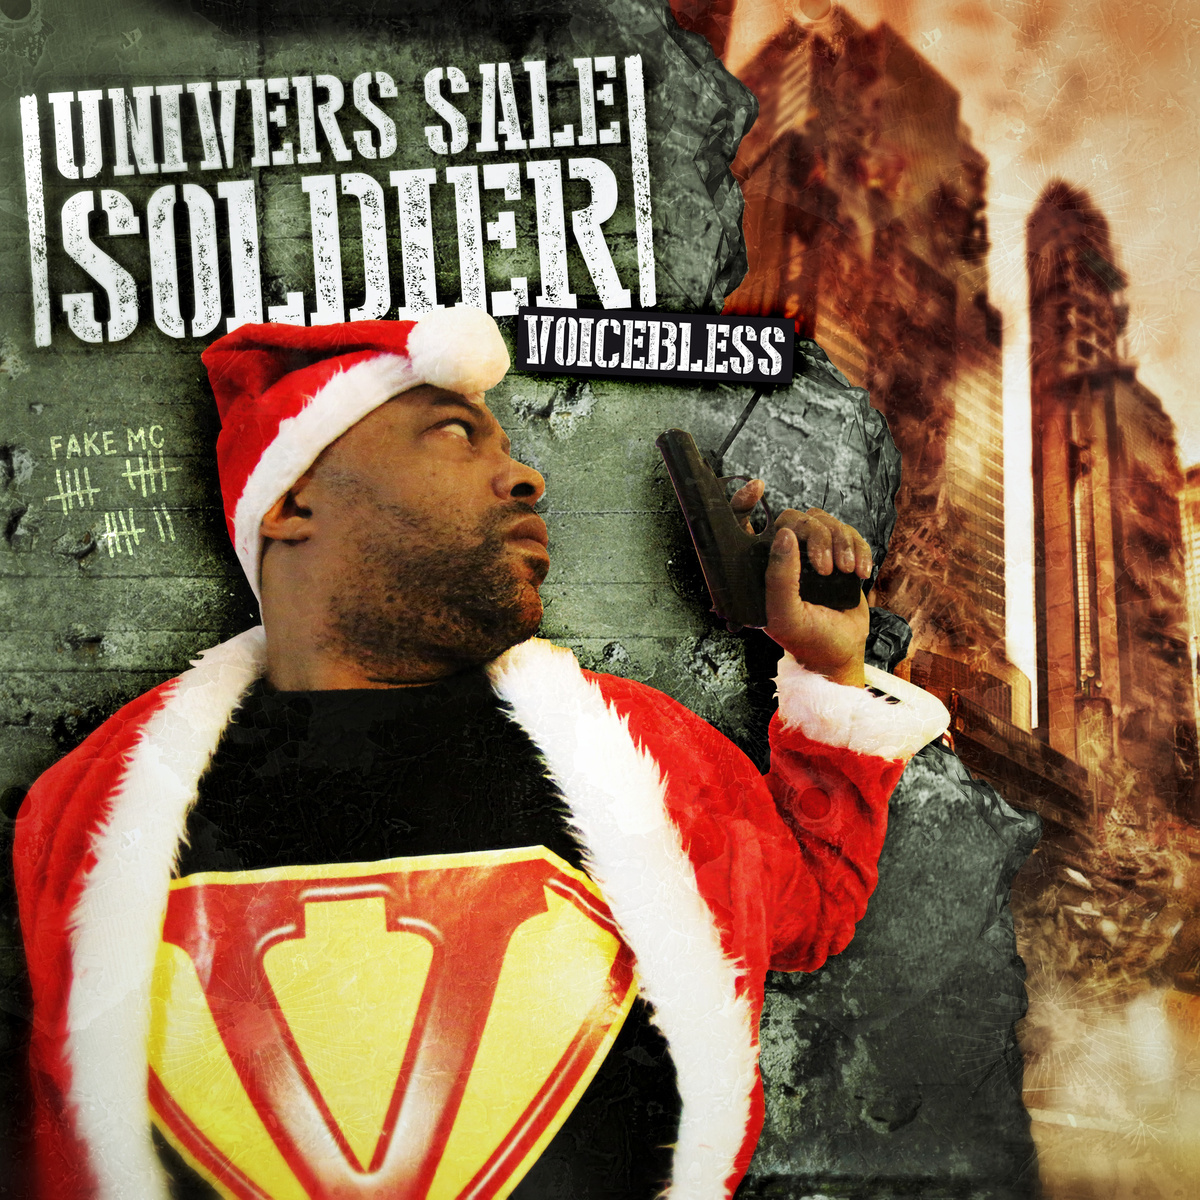 VOICEBLESS UNIVERS SALE